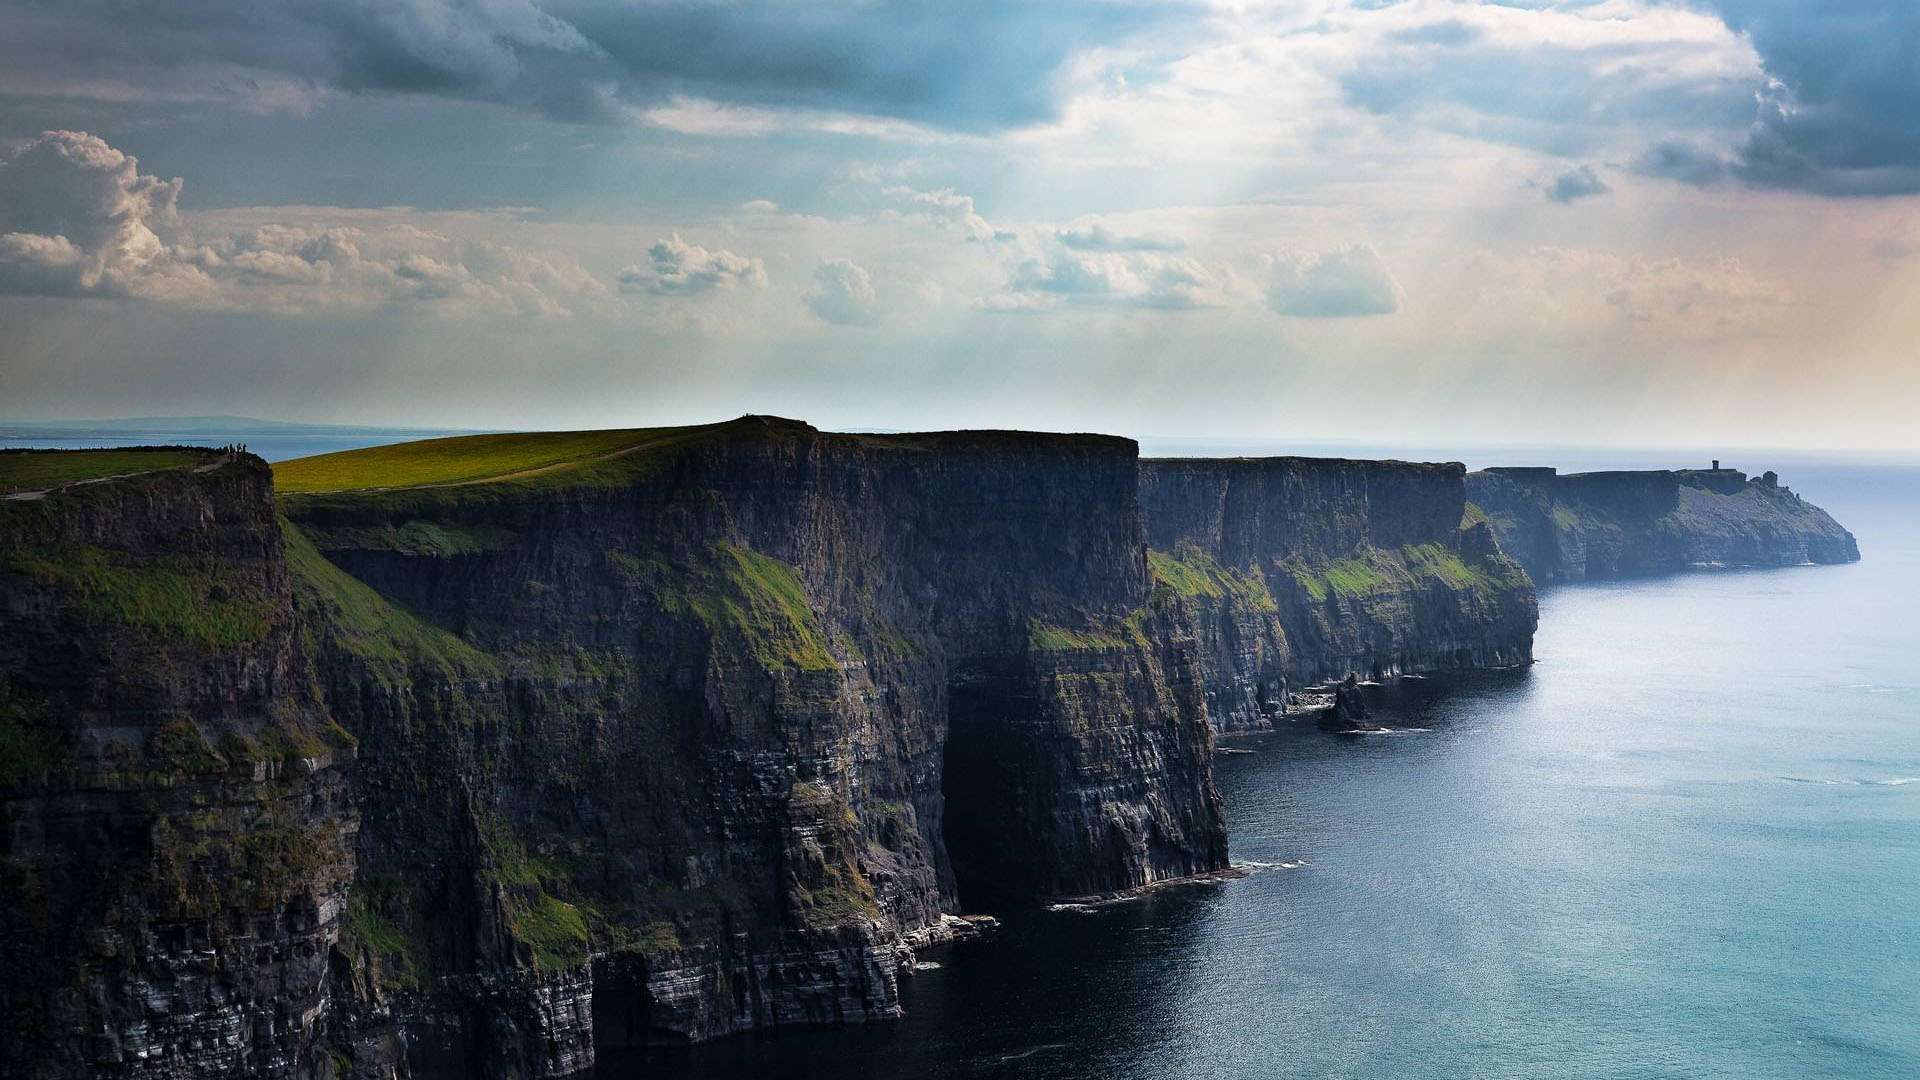 The Cliffs Of Moher County Clare Ireland Hd Wallpaper Landscape Wallpaper Cliffs Of Moher Irish Landscape